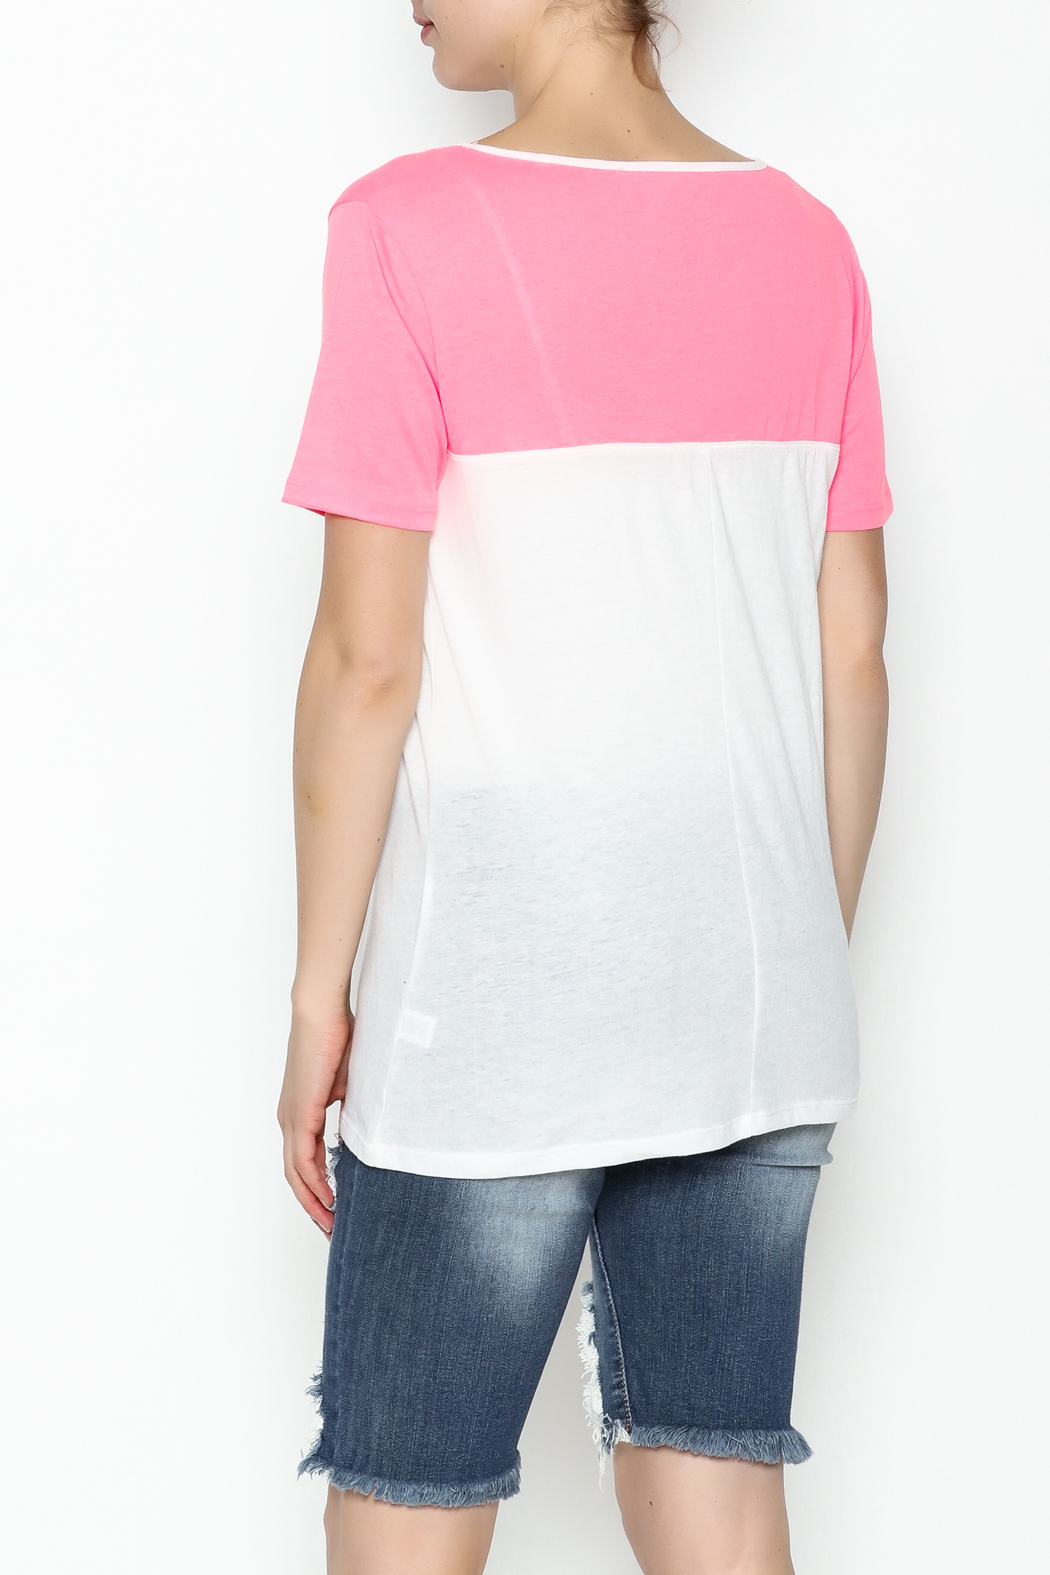 Daisy's Fashions V Neck Printed Tee - Back Cropped Image